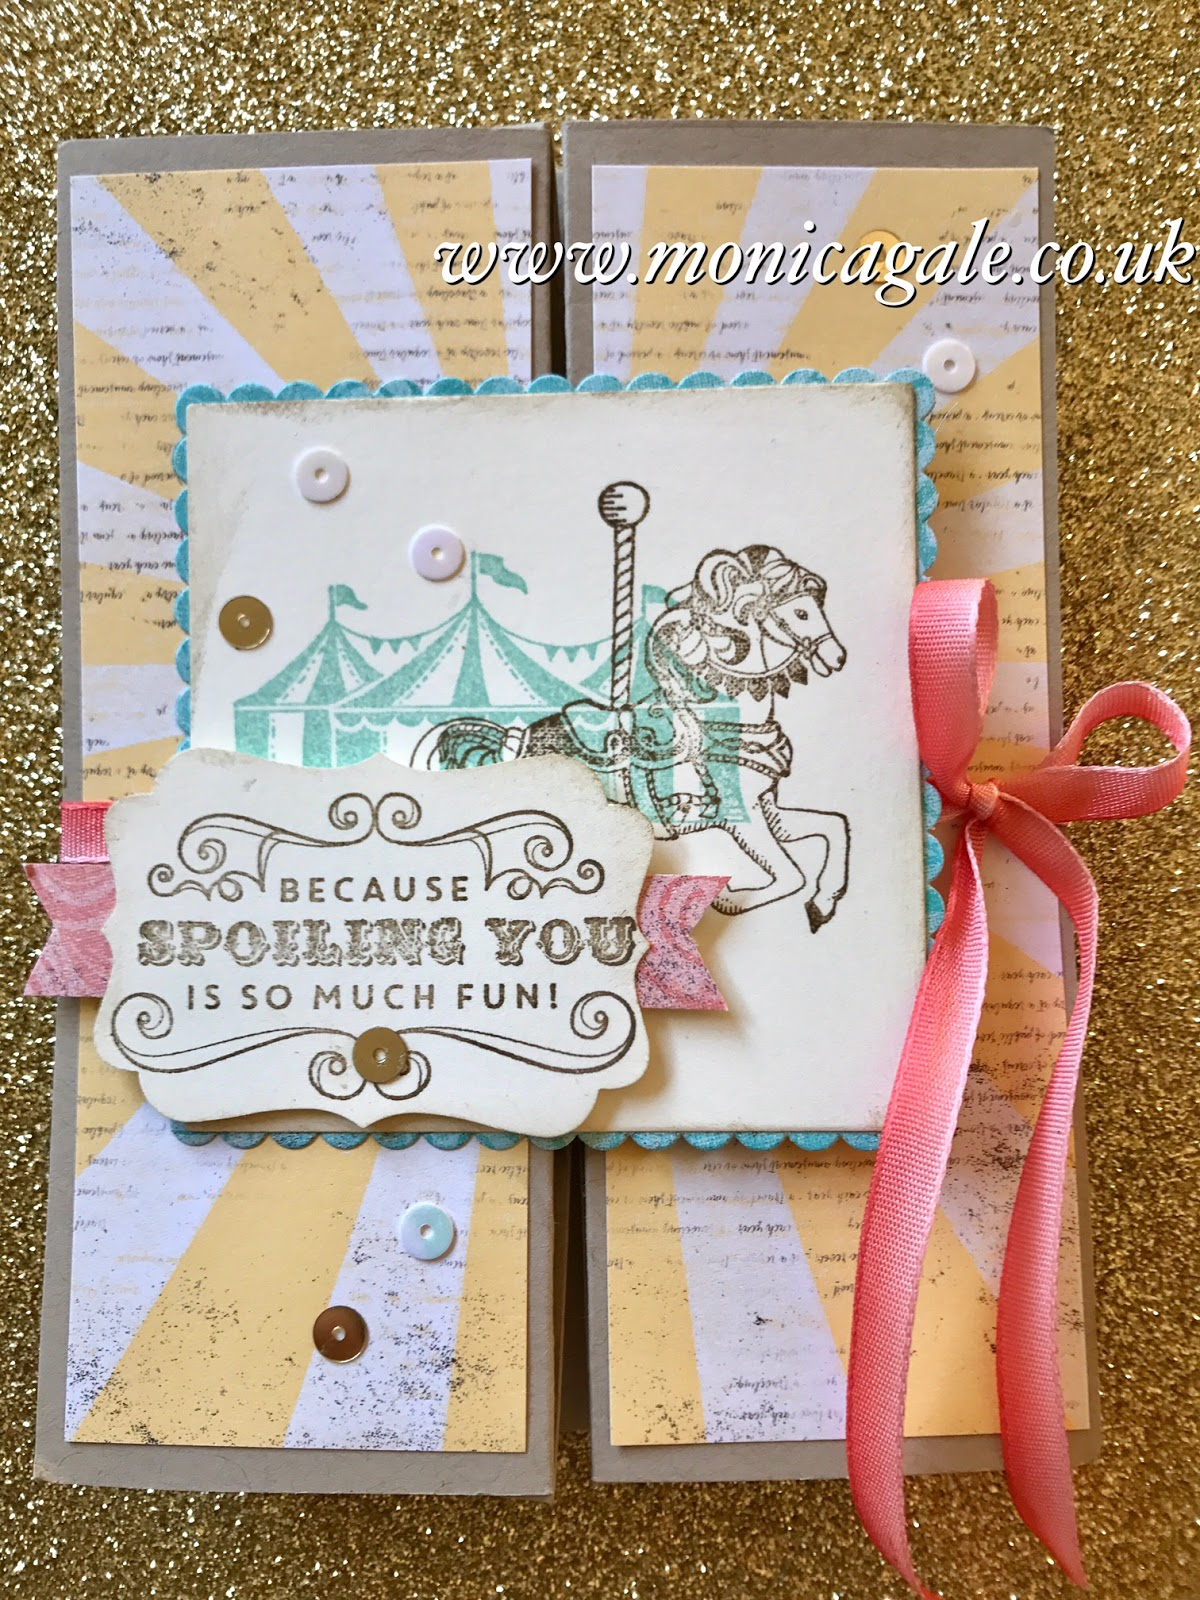 Monica Gale Top STAMPIN UP UK Demonstrator Carousel Birthday